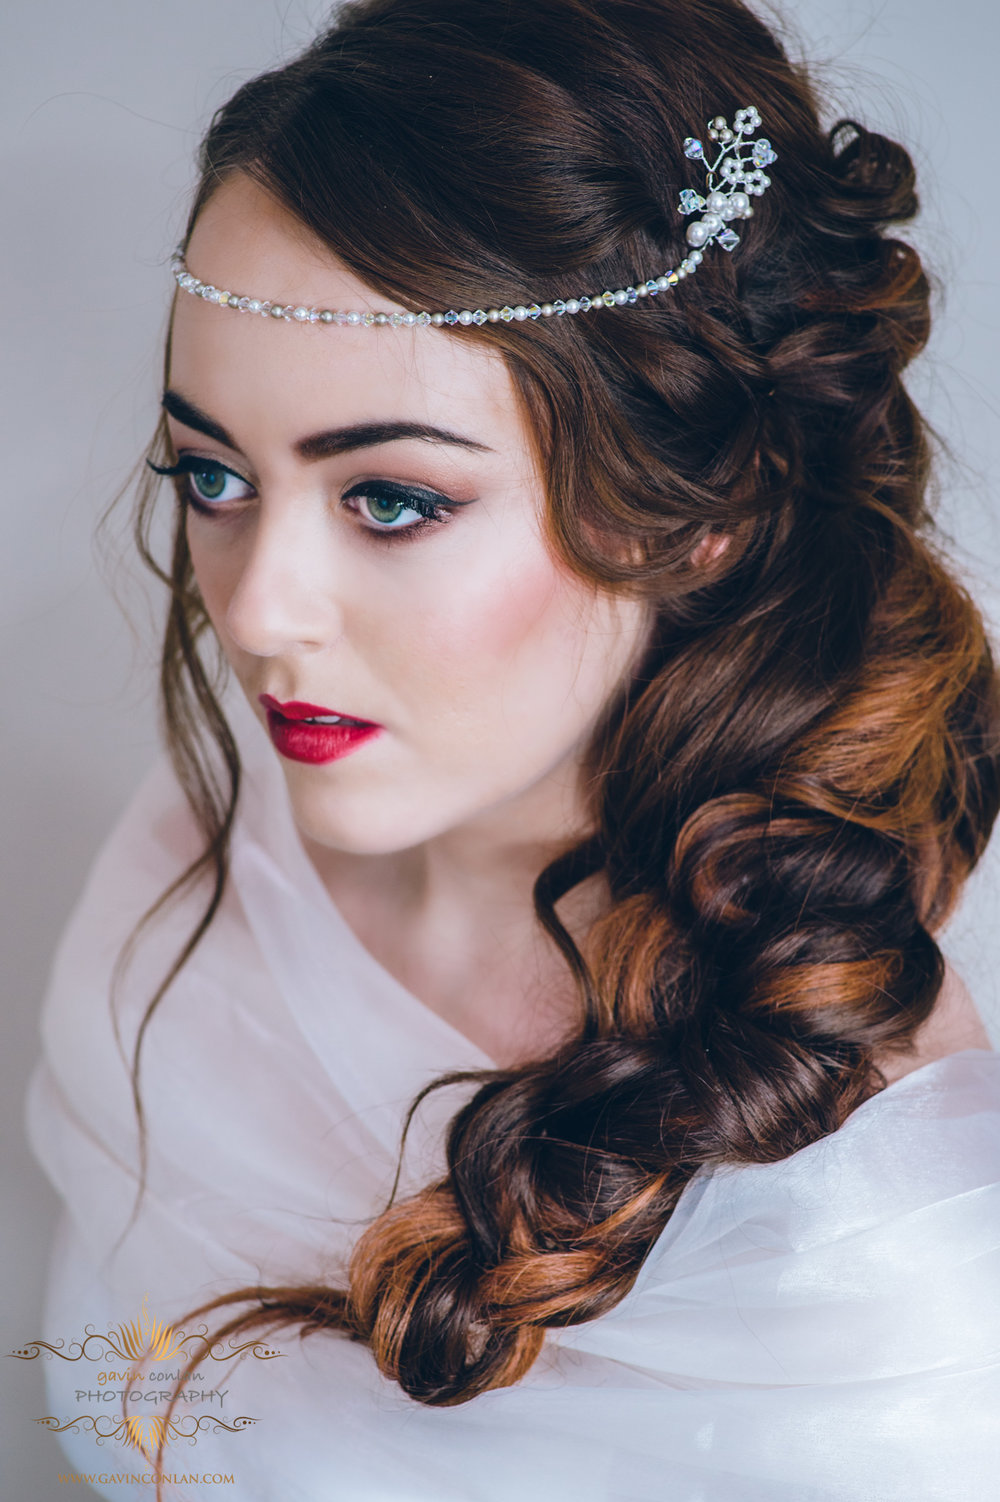 creative-bridal-hair-make-up-jewellery-photo-shoot-gavinconlanphotography-06